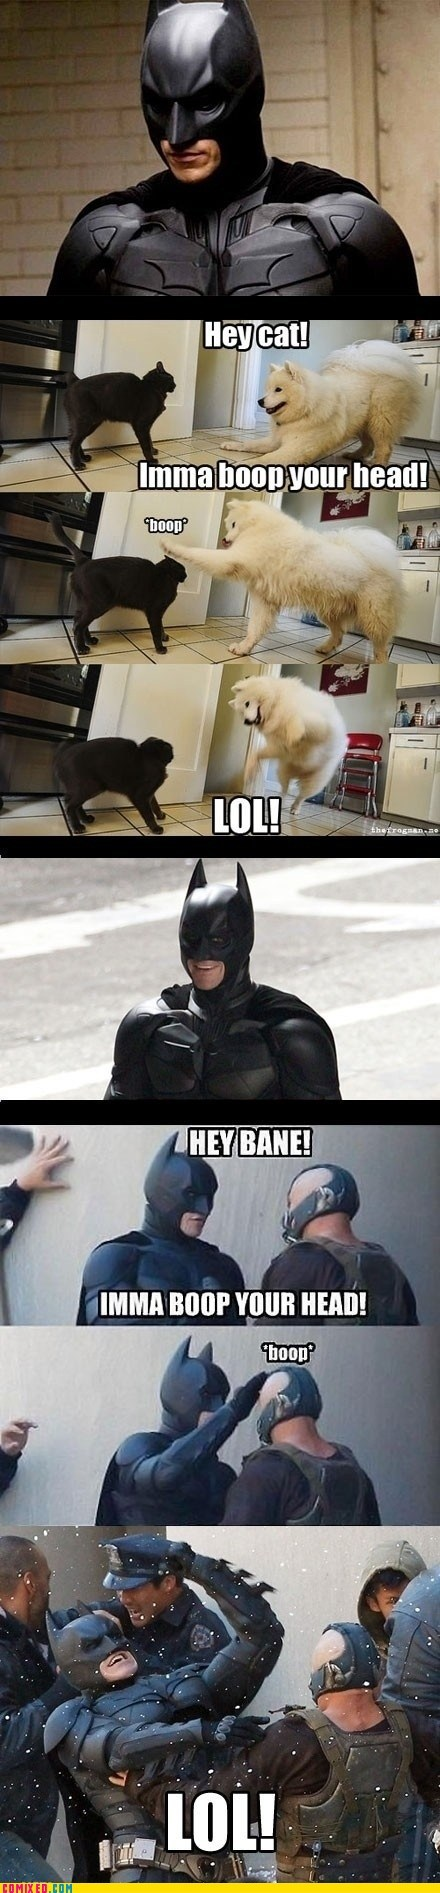 Where Batman Gets His Fight Moves From